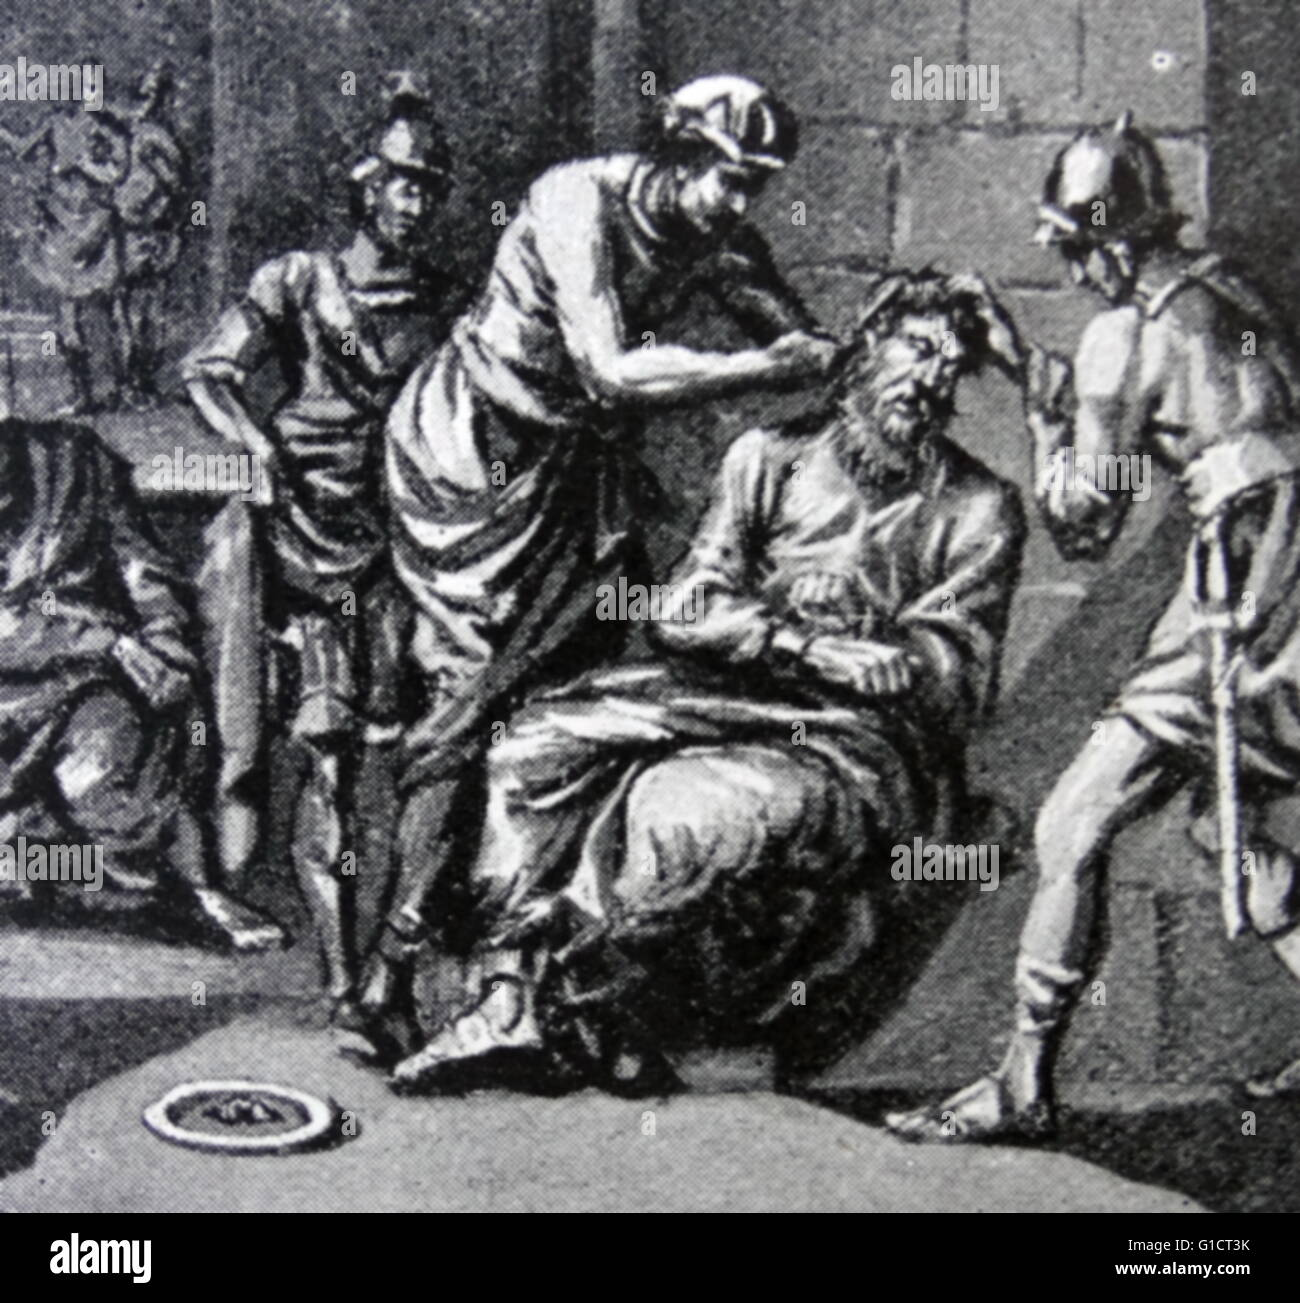 Torture of a Roman prisoner possibly an early Christian circa 200 AD - Stock Image